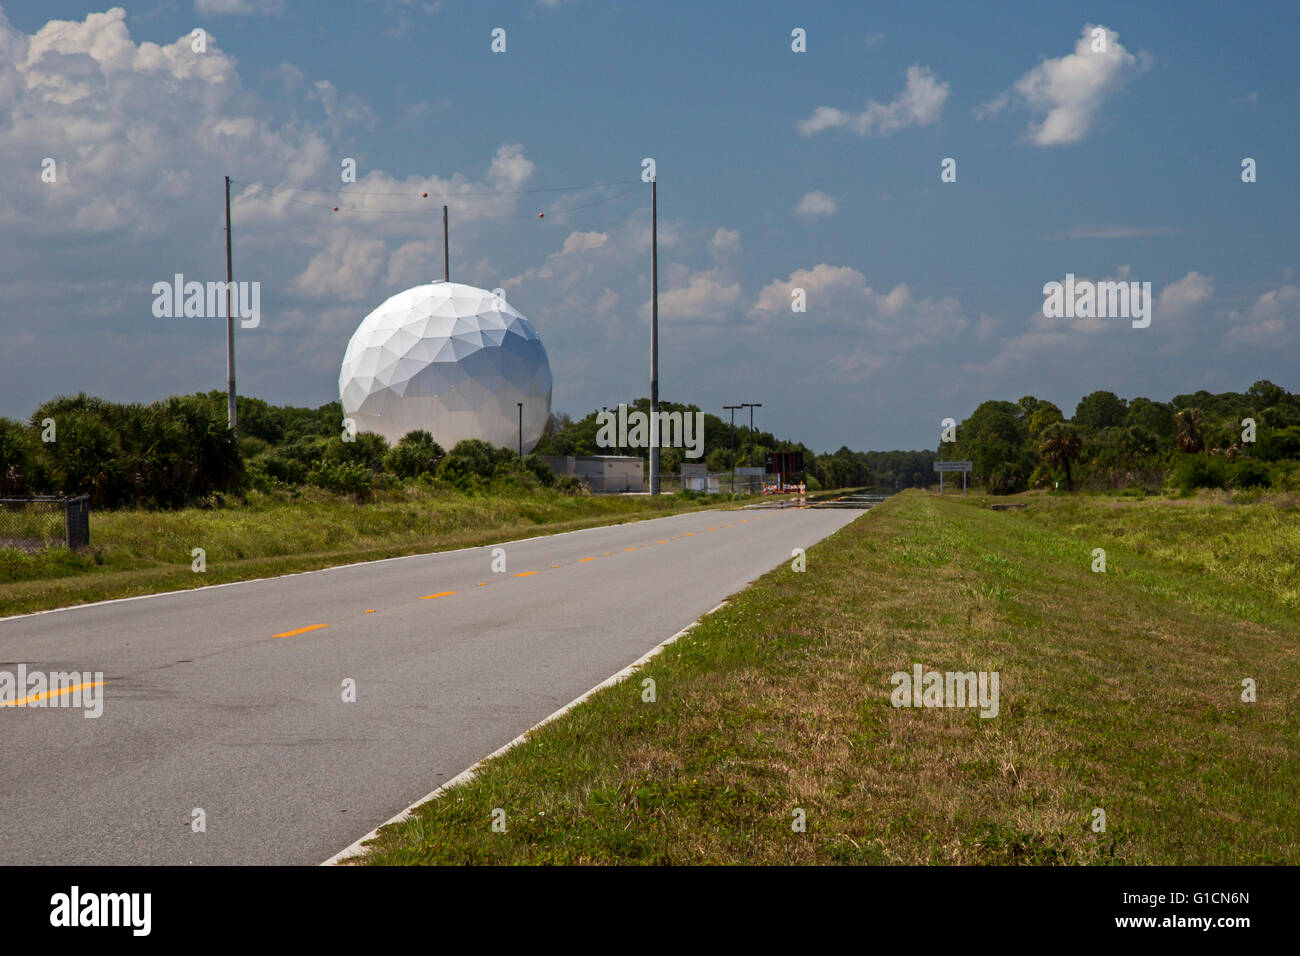 Titusville, Florida - A radar dome in Canaveral National Seashore near Kennedy Space Center. - Stock Image